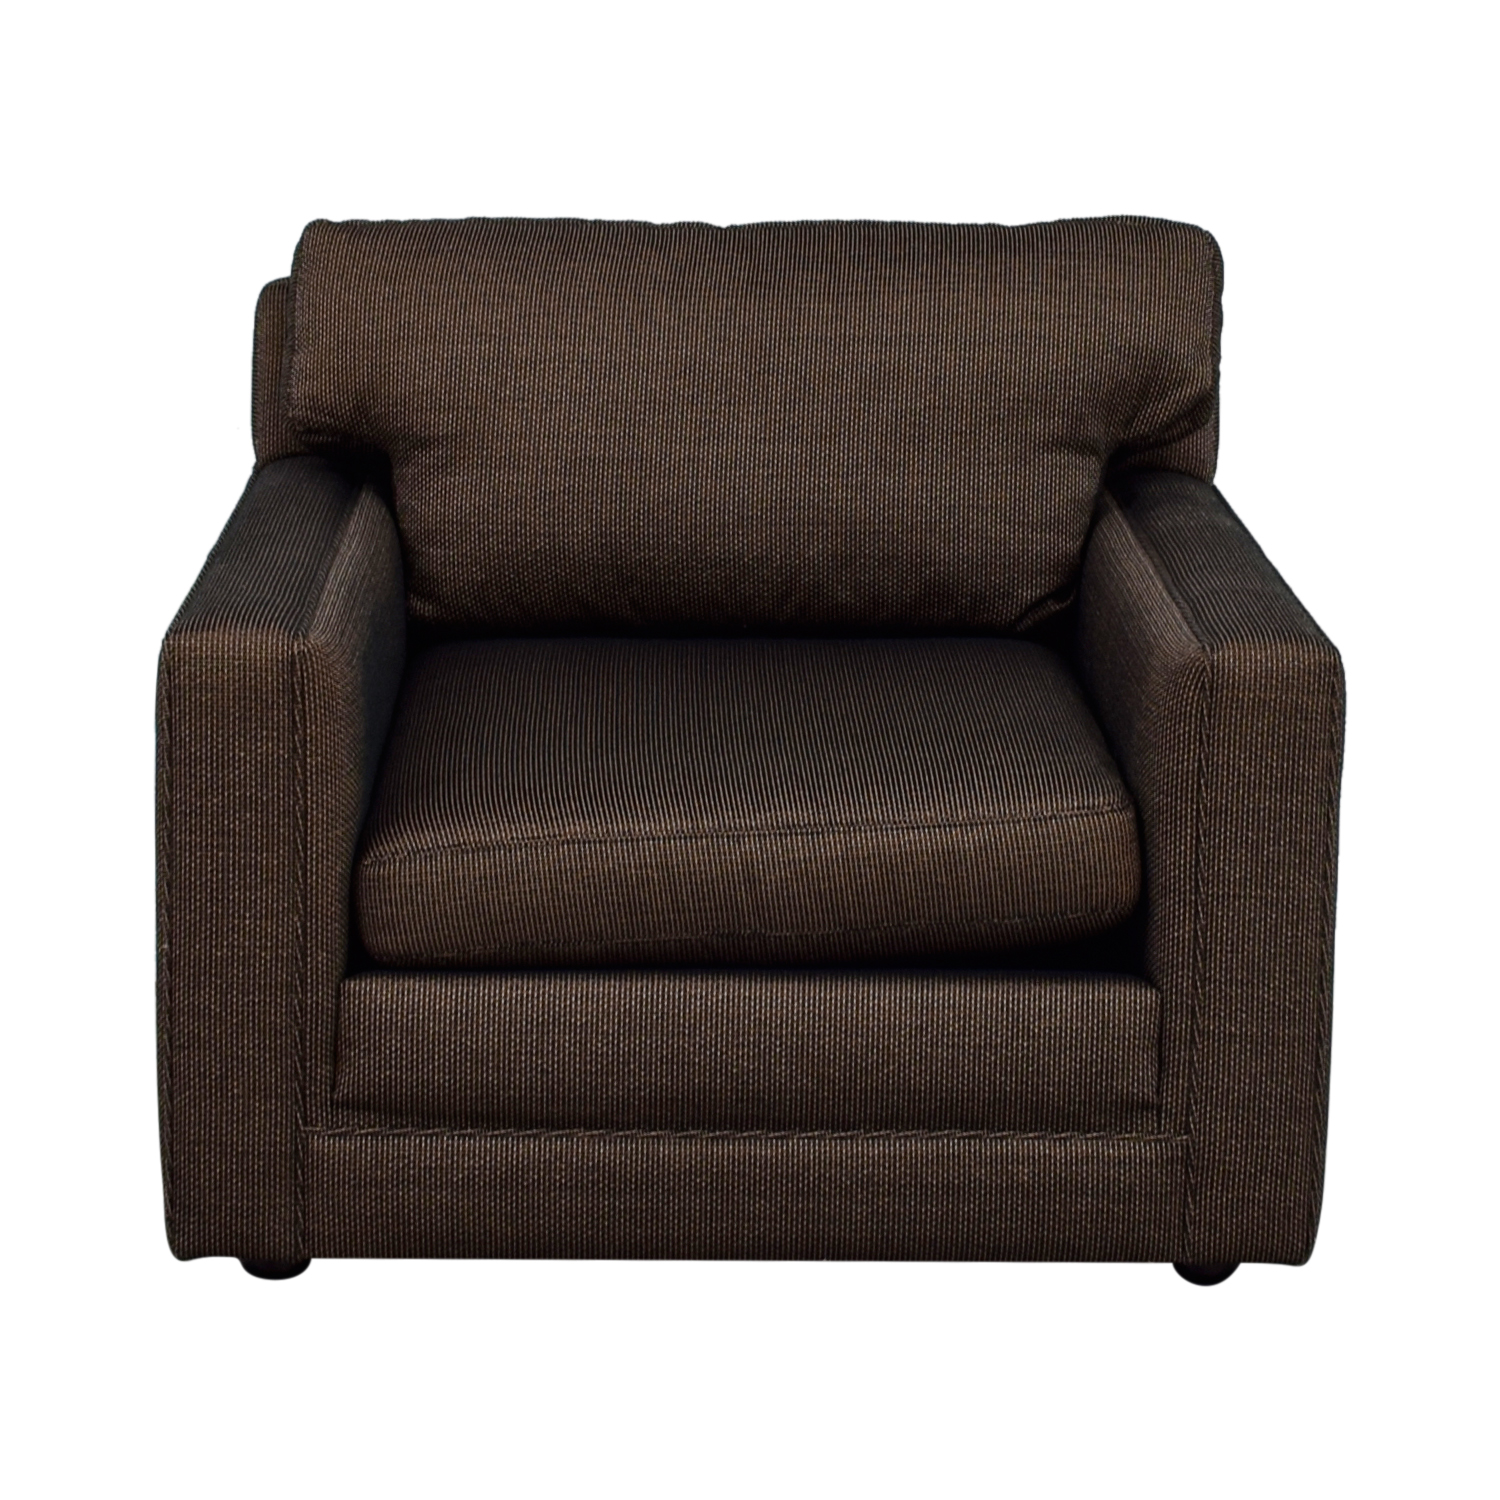 Keilhauer Keilhauer Cascade 1011 Tweed Accent Chair on sale